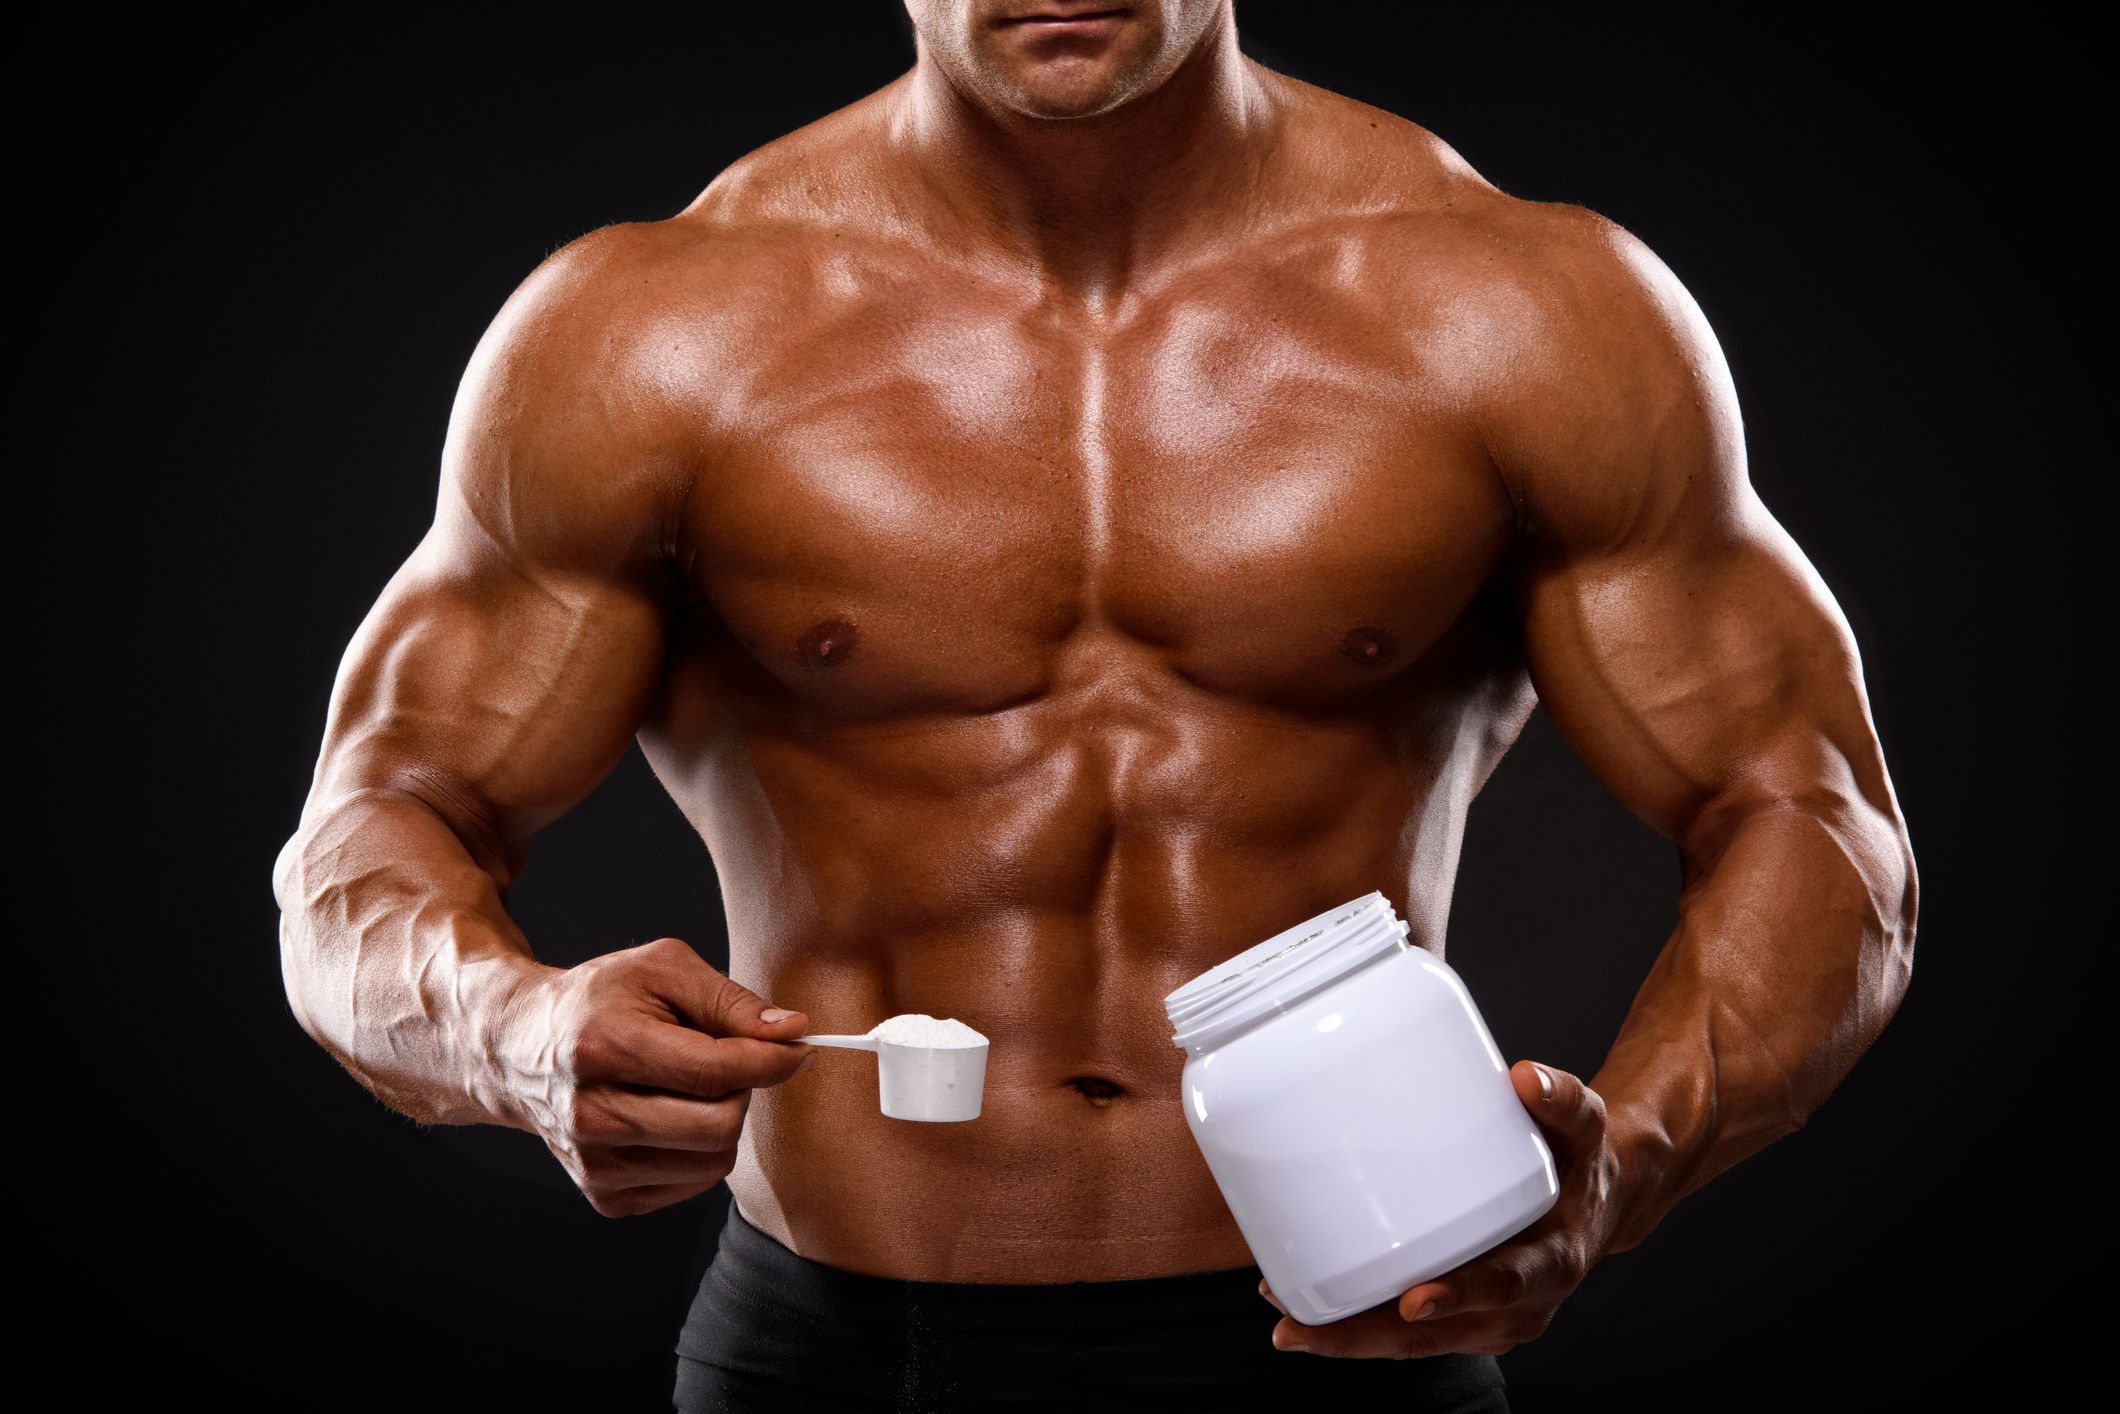 Creatine: What It Is, What It Does, and Its Side Effects